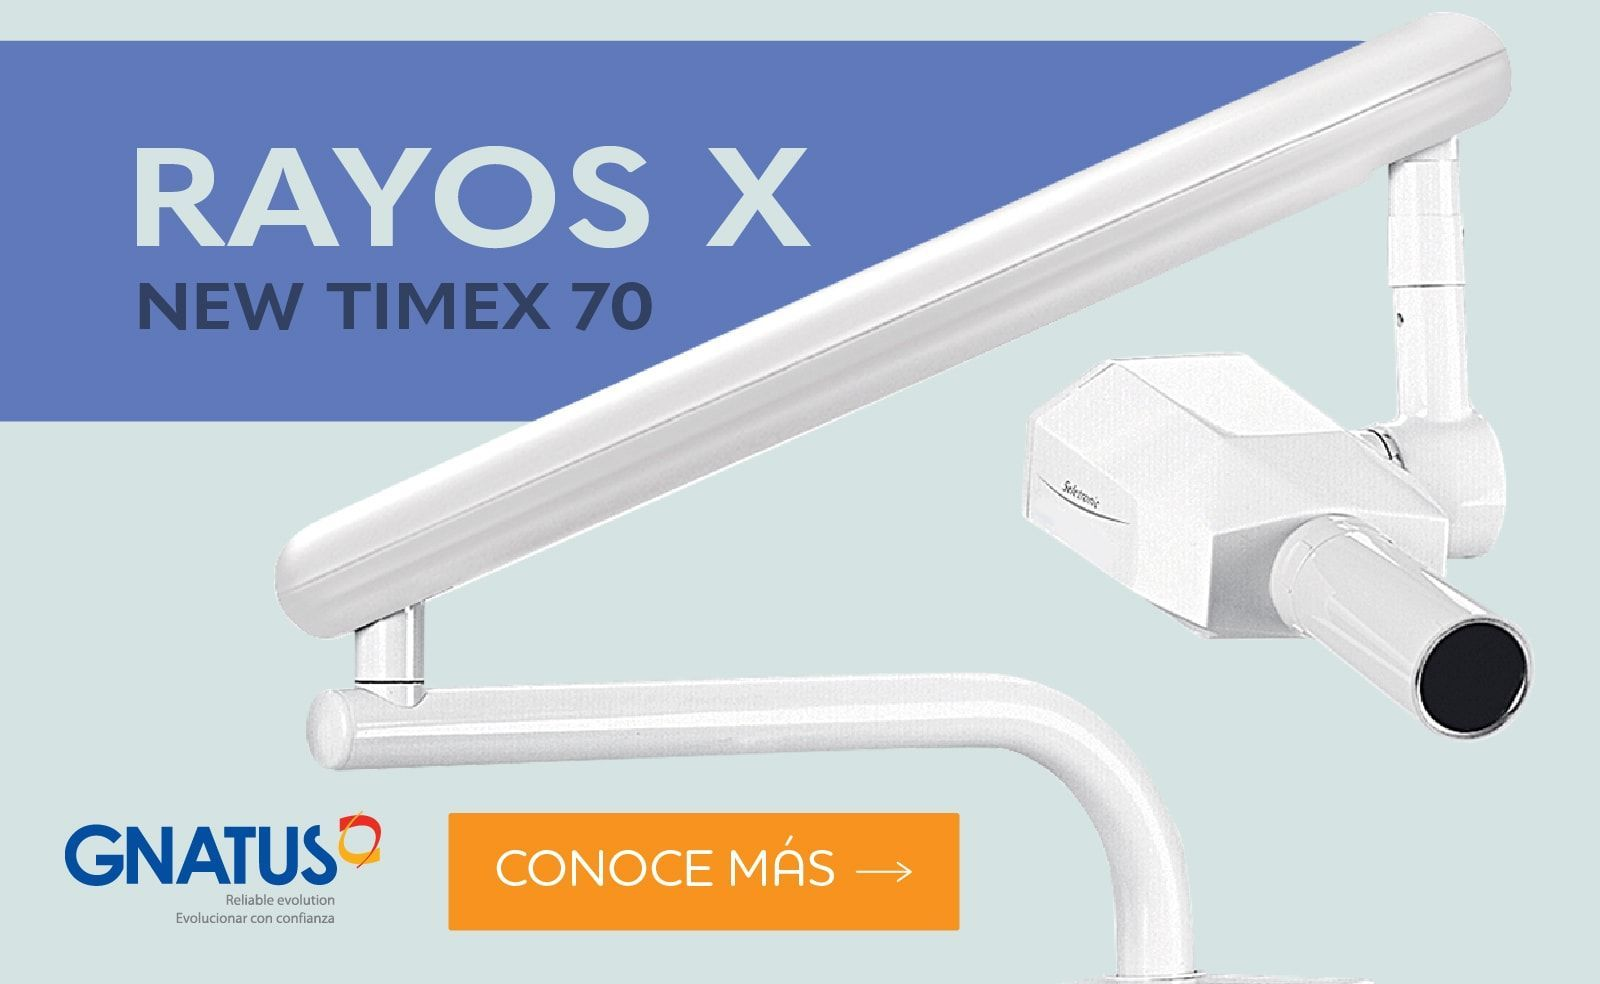 Rayos X – New timex 70 materiales dentales Home tesar regular copy 3 100 min